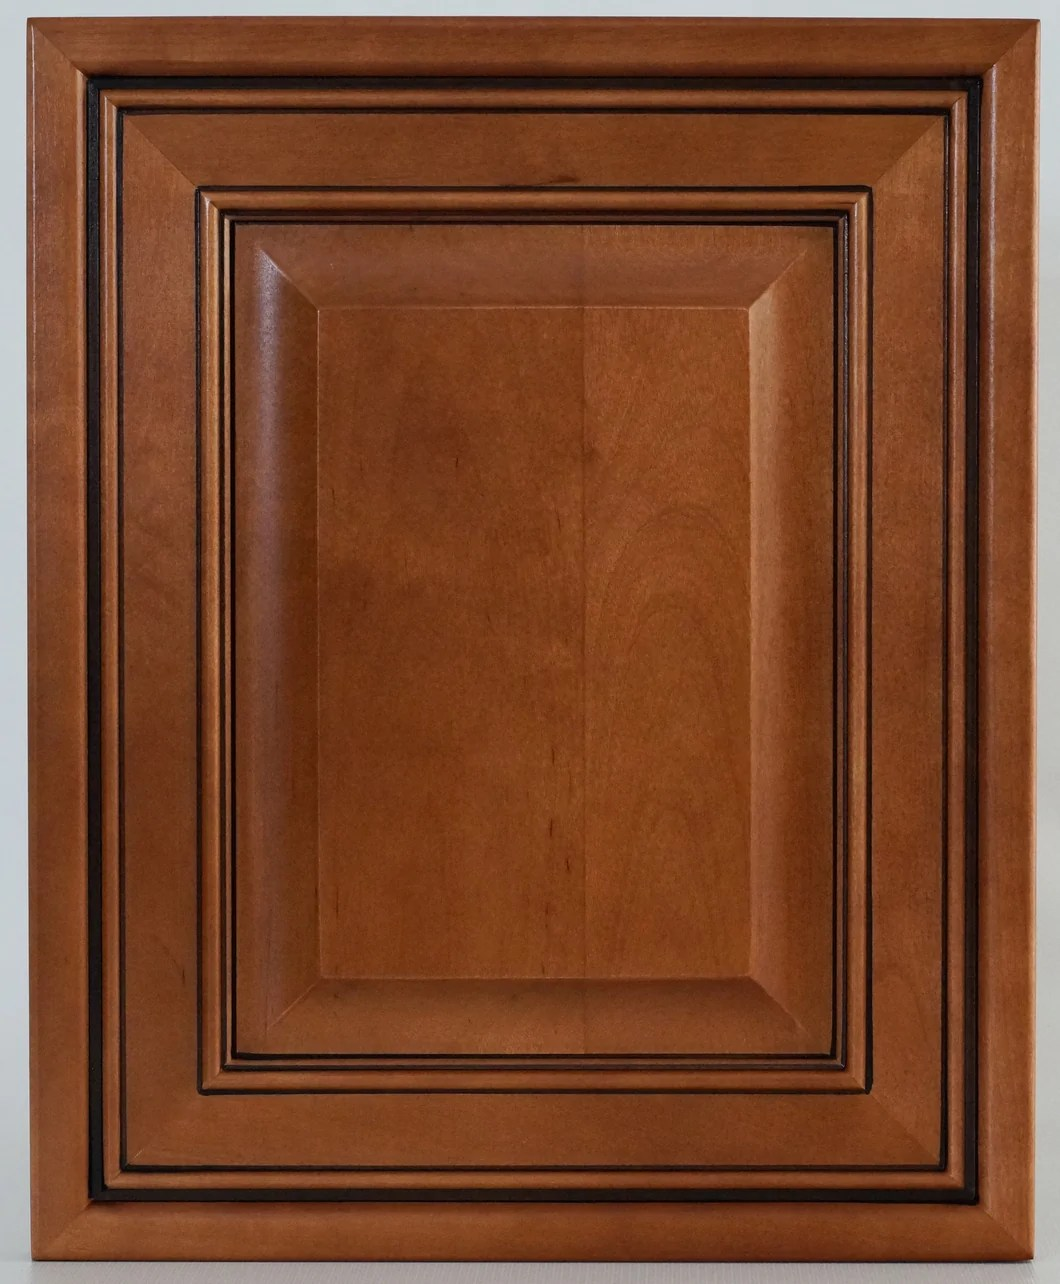 kitchens for less kitchen layout planner mocha maple cabinet cabinets traditional door